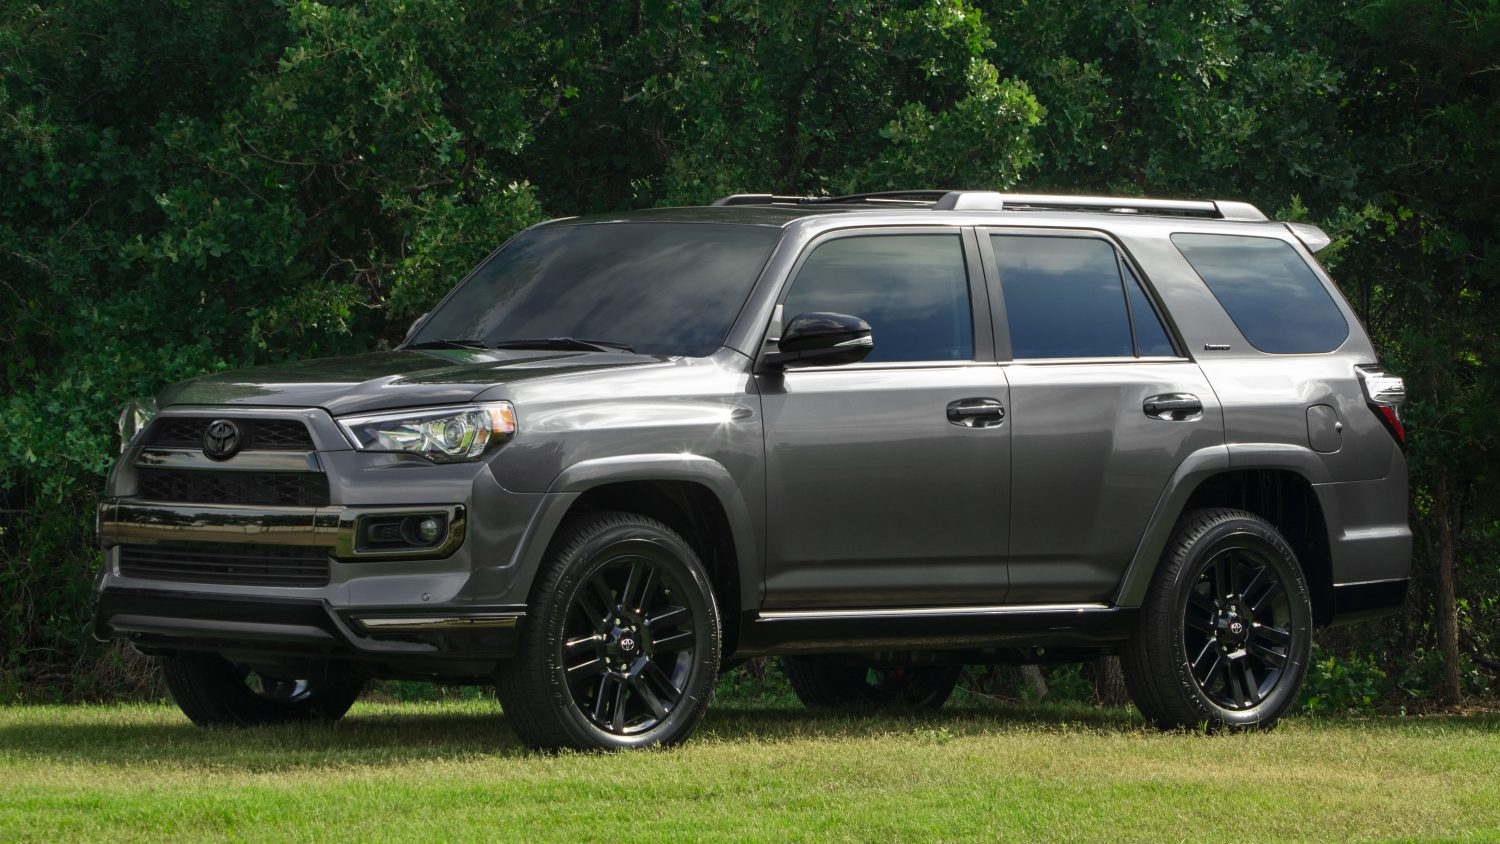 Toyota Unveils 2019 4runner Nightshade Tacoma And Tundra Sx Packages At State Fair Of Texas Toyota Usa Newsroom